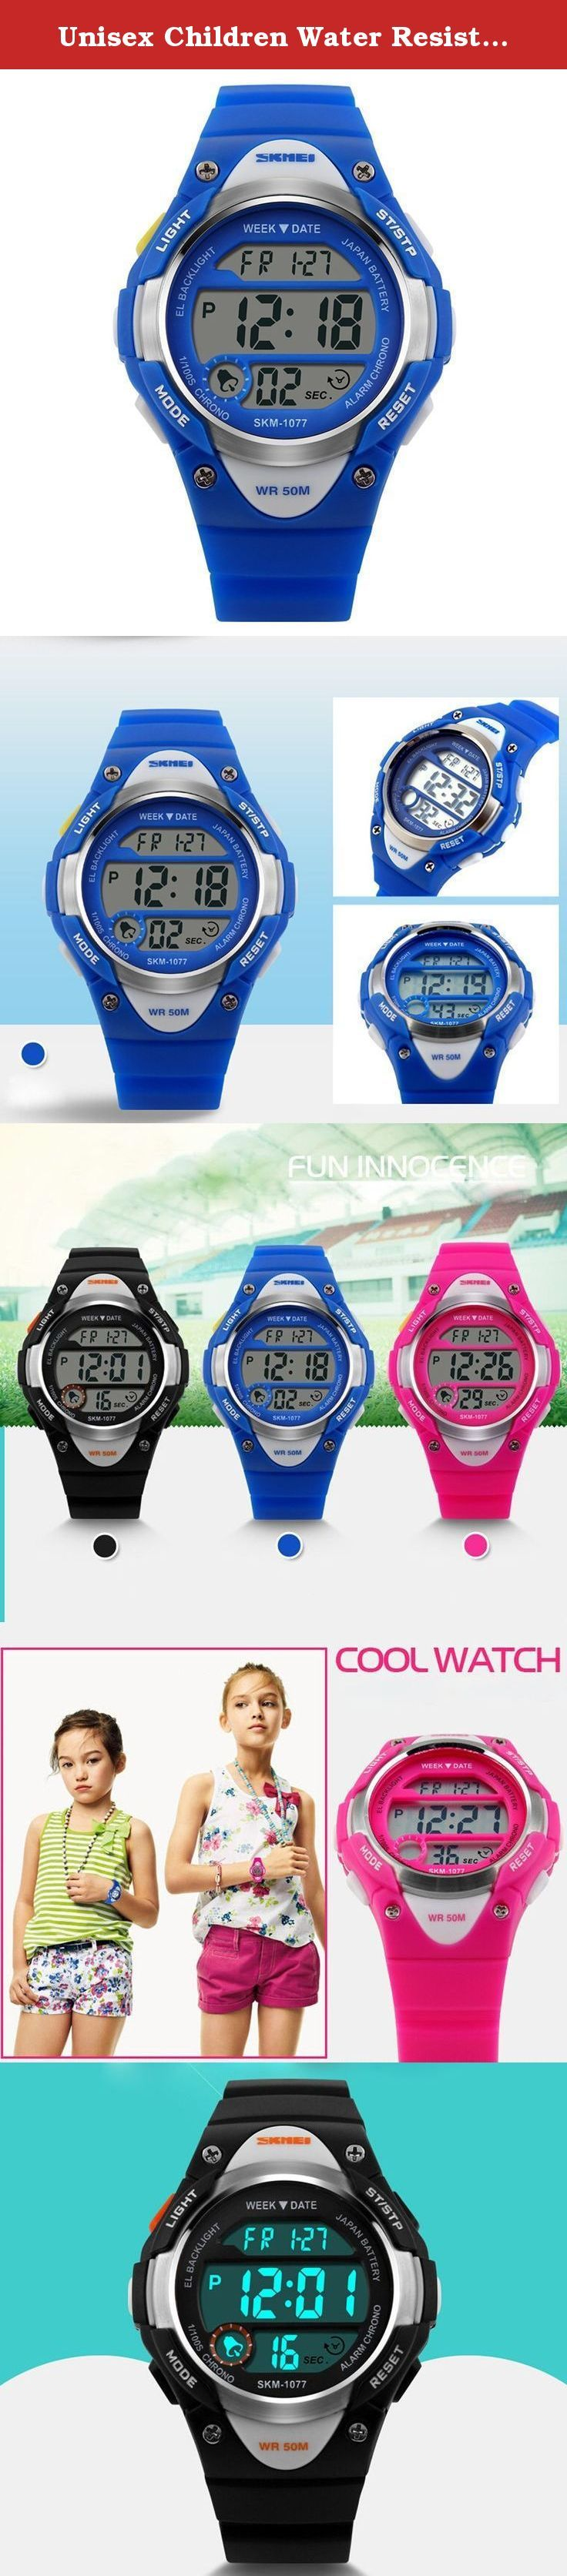 Unisex Children Water Resistant Watch Multifunction LED Watch Student Boy Girl Sports Wristwatch- Blue. A variety of styles you can choose in our store ! Package Included: 1 x Watch Please Note: 1. Actual color may vary from picture due to computer settings. 2. Find store front of Sunny world, more surprises are waiting for you! Dear Buyer, Thanks for your continuous support to our store, and we are always striving to improve ourselves in terms of service, quality, sourcing, etc. It would…